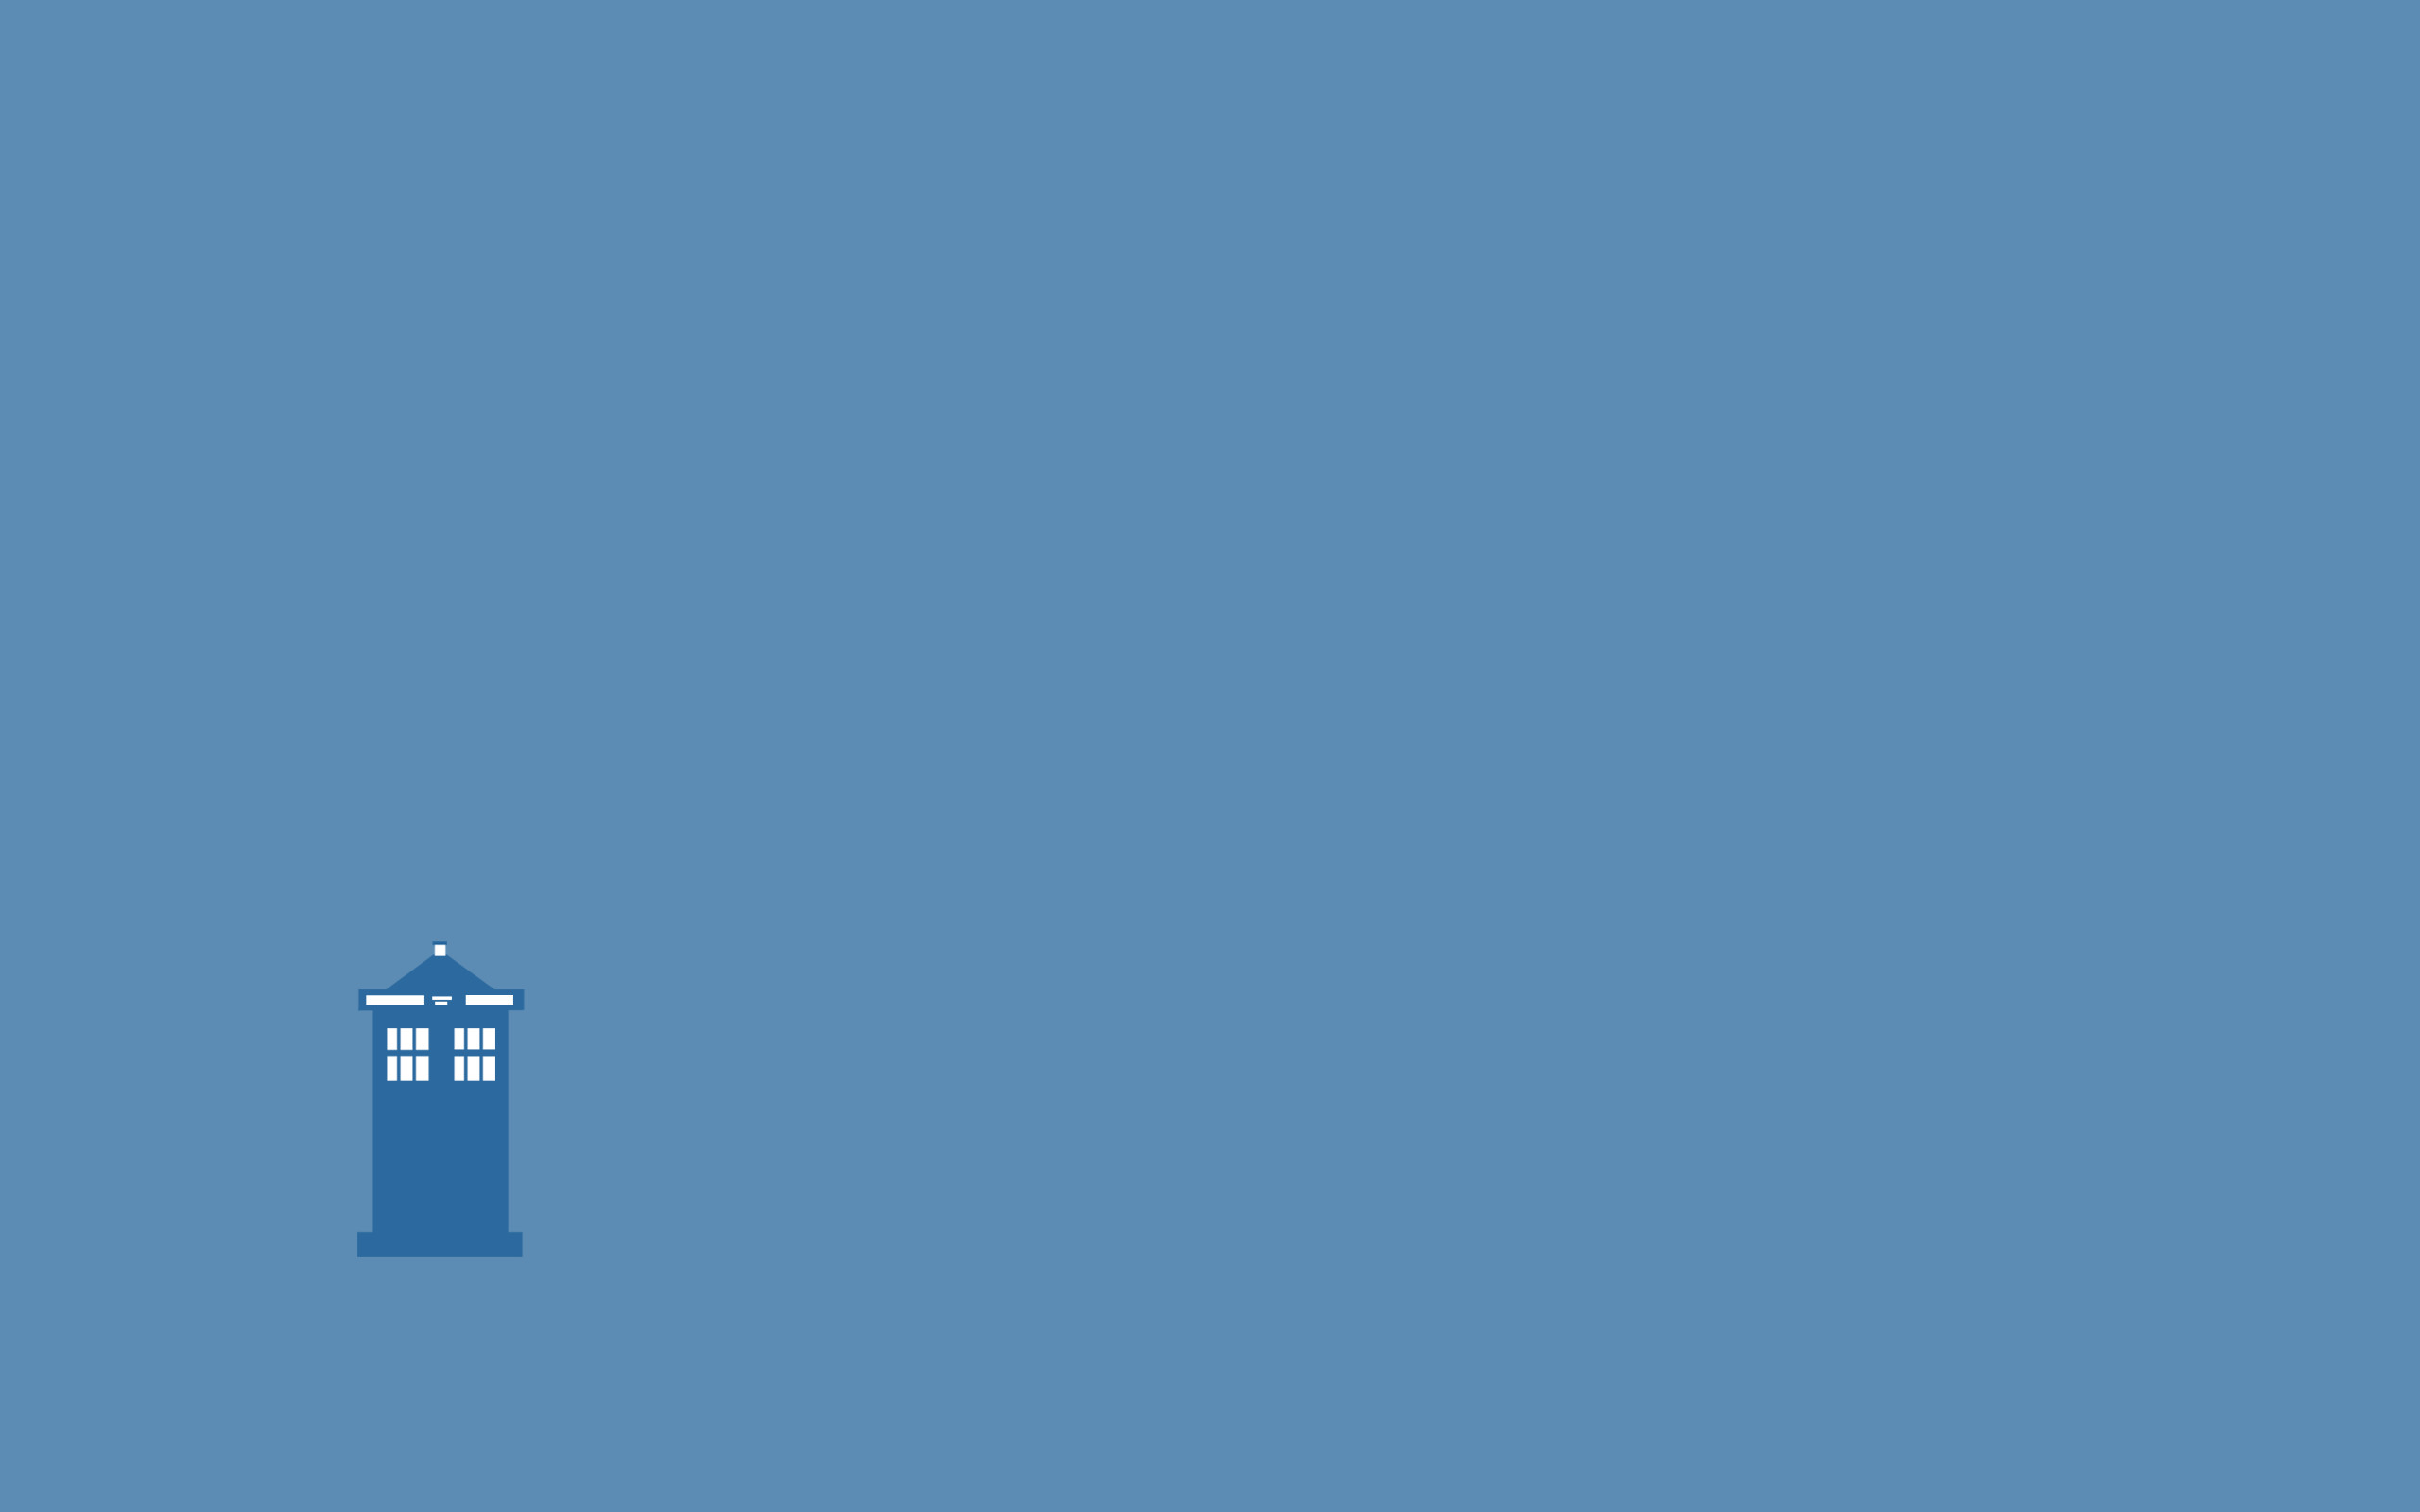 cool-simple-and-minimalist-desktop-wallpaper-the-police-